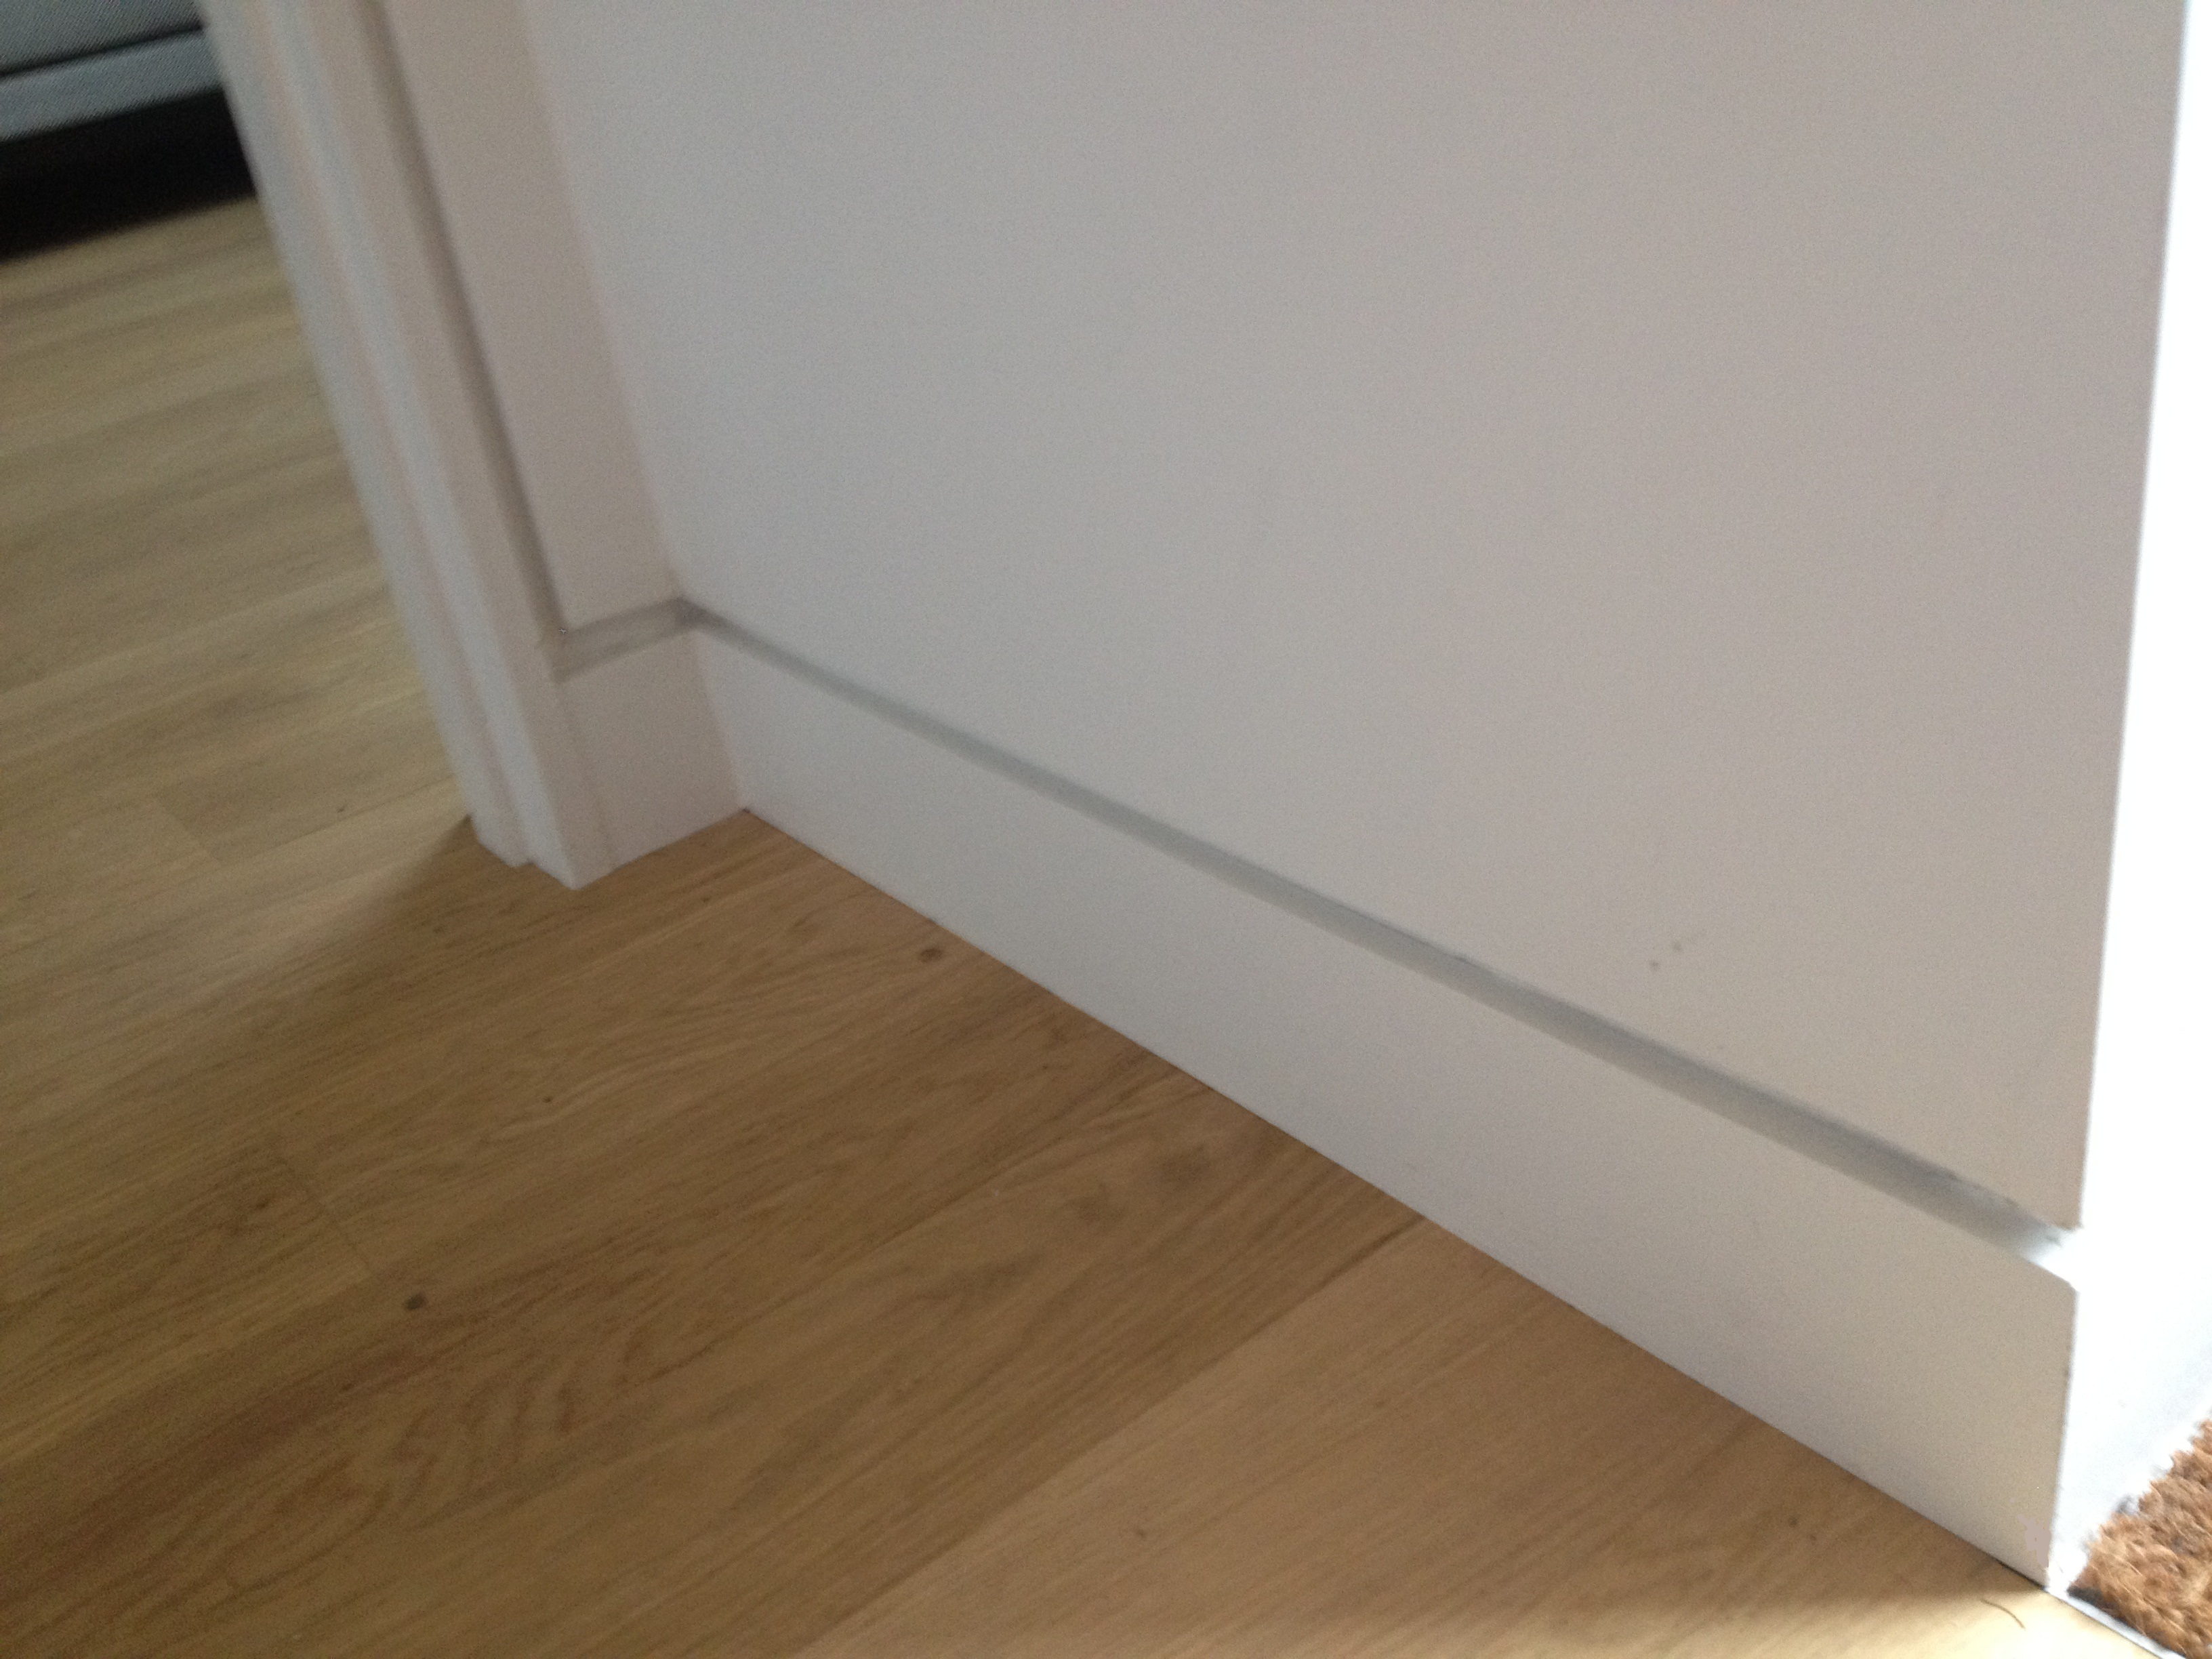 Modern Baseboard molding for modern home interior design ideas